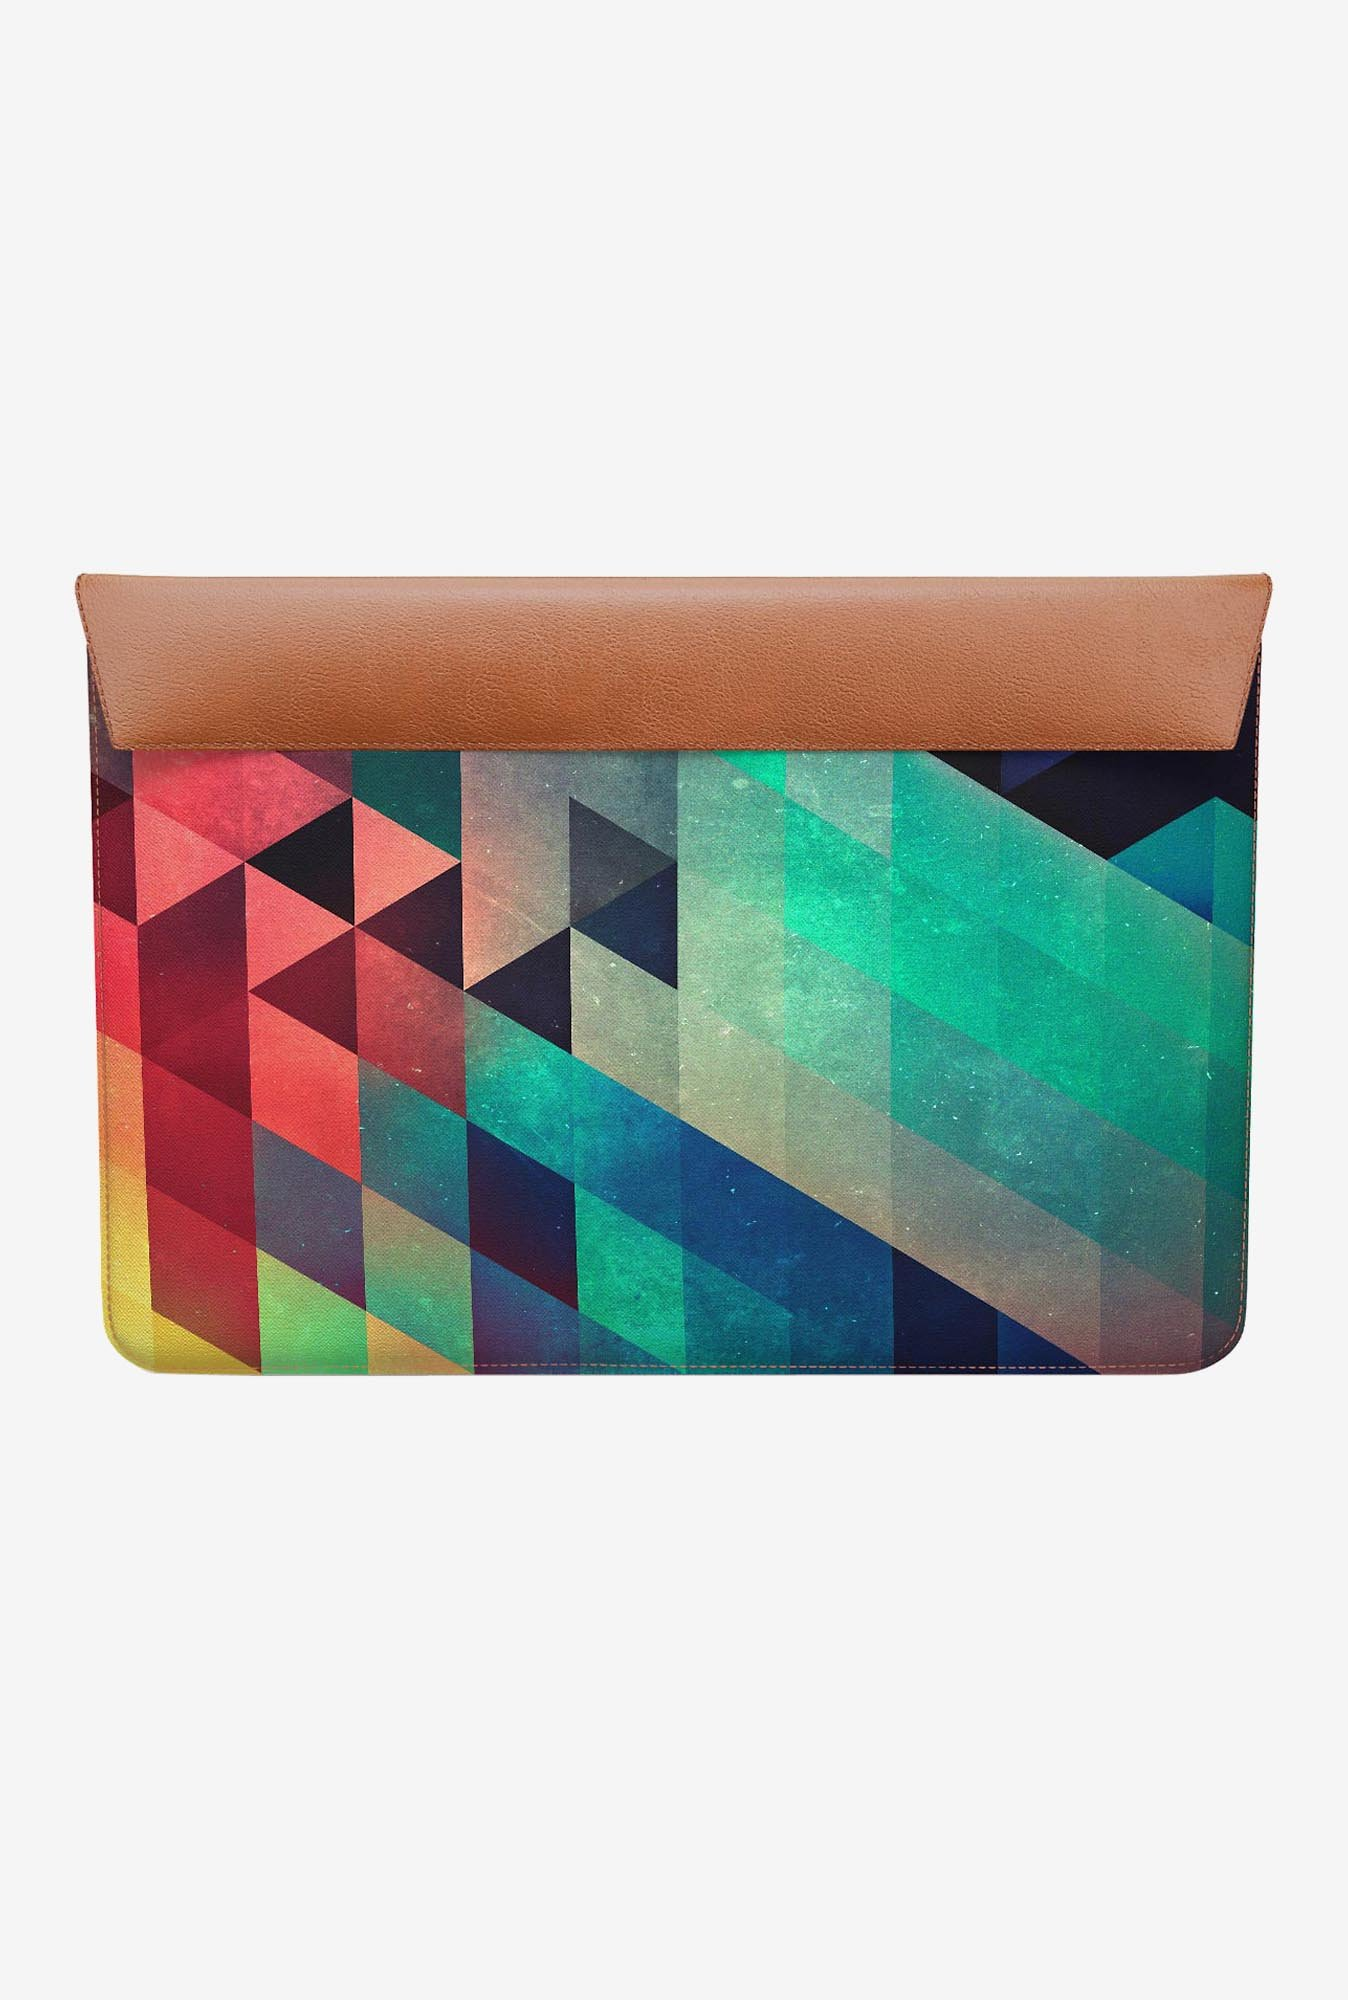 DailyObjects Whw Nyyds Yt MacBook Air 11 Envelope Sleeve